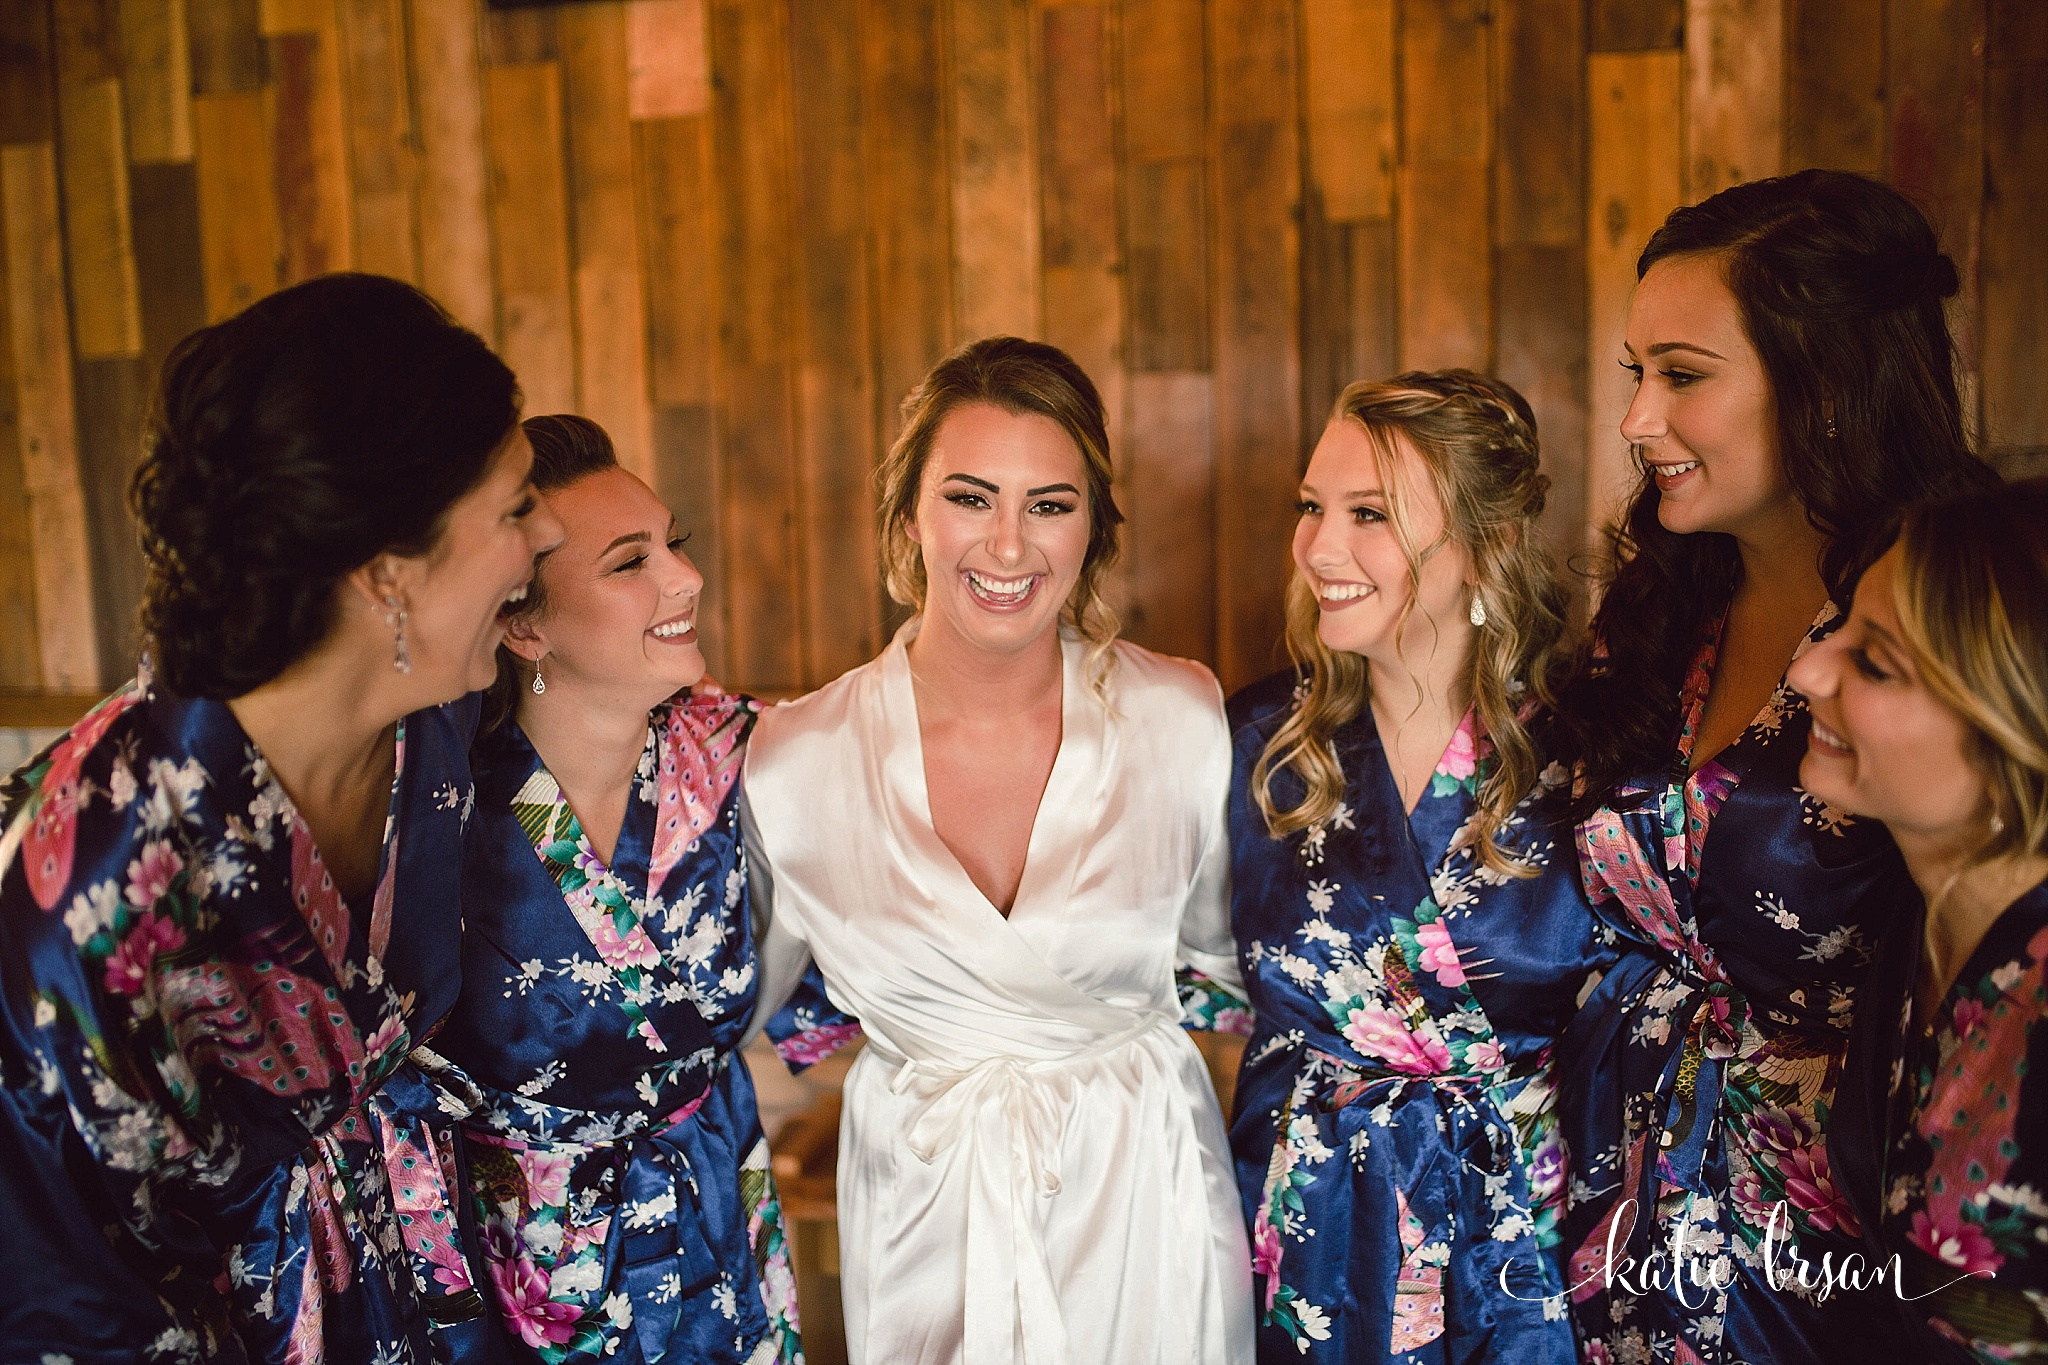 Fishermen'sInn_Wedding_Elburn_Chicago_Wedding_Photographer_1012.jpg